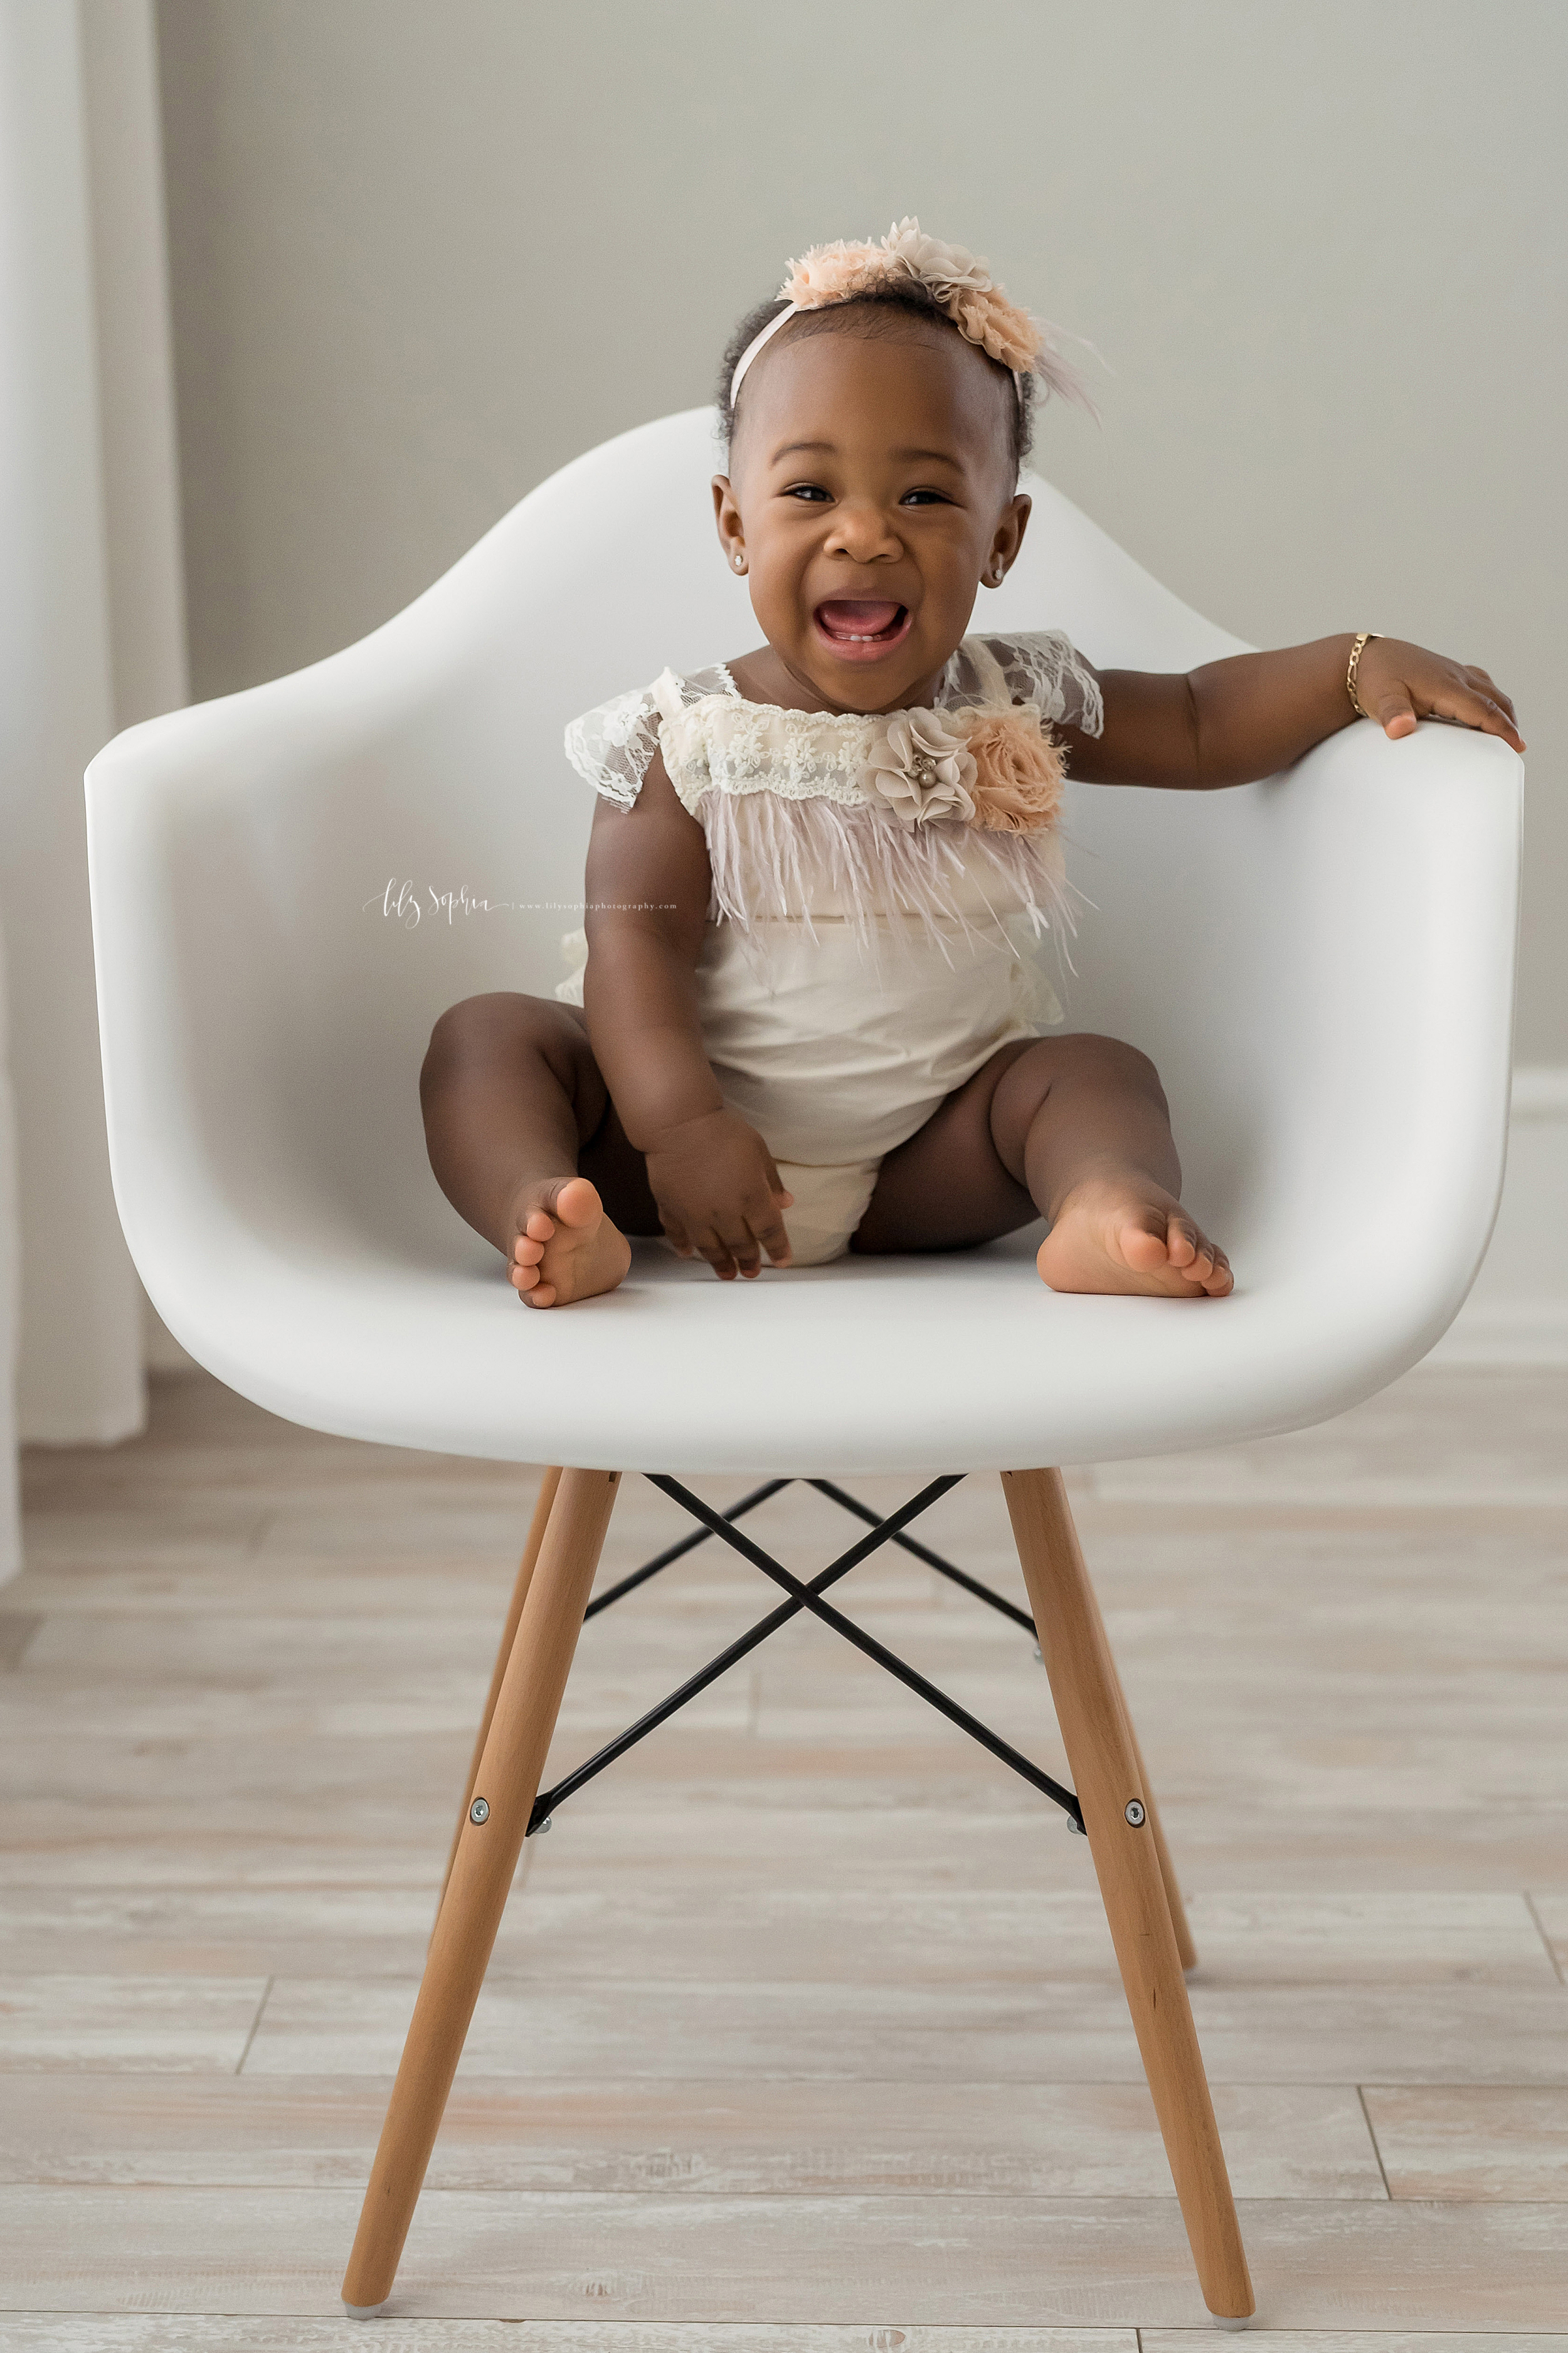 Milestone photo of an excited African-American girl who is turning one year old as she sits barefoot in an Atlanta studio in natural light on a molded white chair wearing a cream head band with peach roses and a cream one piece outfit with lace, fringe and a peach rose.